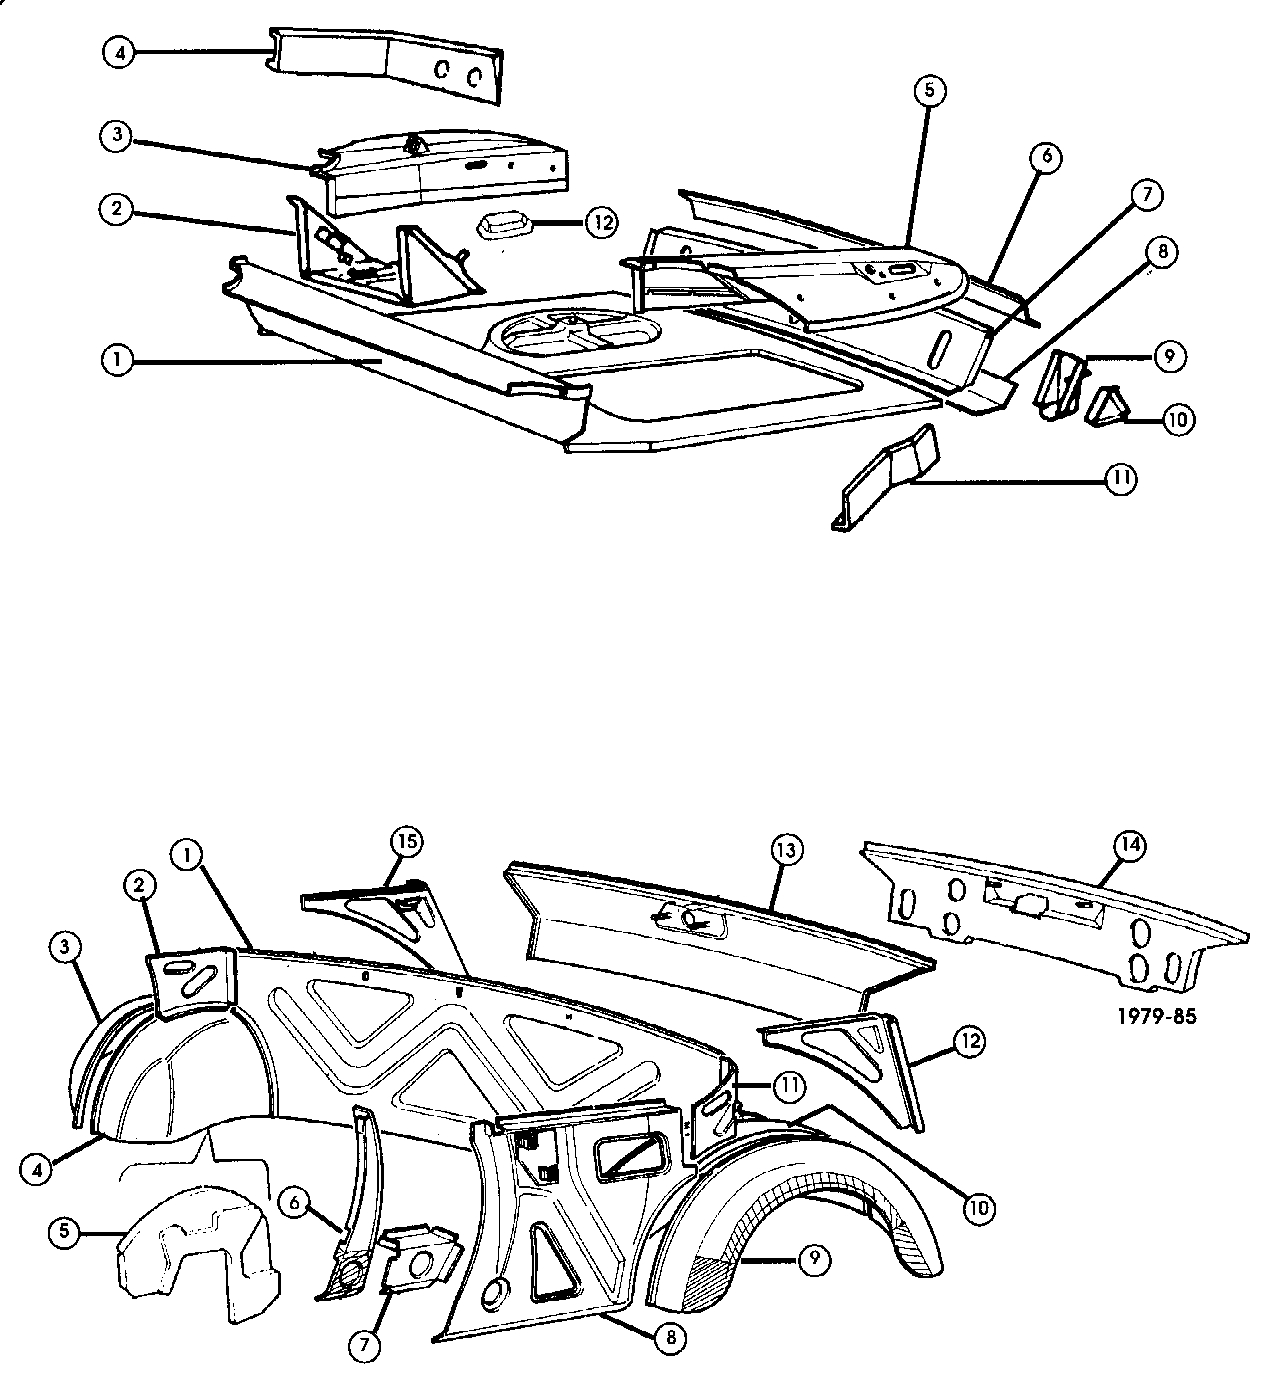 Fiat 124 Body, Boot trunk Panels | Fiat 500 and Clic Abarth ...  Fiat Spider Wiring Diagrams on fiat spider parts diagrams, fiat 500 wiring diagram, fiat 124 schematic, fiat 124 transmission, fiat 124 plum color, fiat 124 radiator, fiat 124 spider, fiat spider 2000, fiat 124 oil pump, fiat 124 fuel pump, fiat uno wiring diagram, fiat 124 parts, fiat 124 ignition switch, gilera 124 wiring diagram, fiat 124 exhaust, fiat 600 wiring diagram, fiat 124 frame, fiat 124 dimensions, fiat 124 seats, fiat 124 engine,